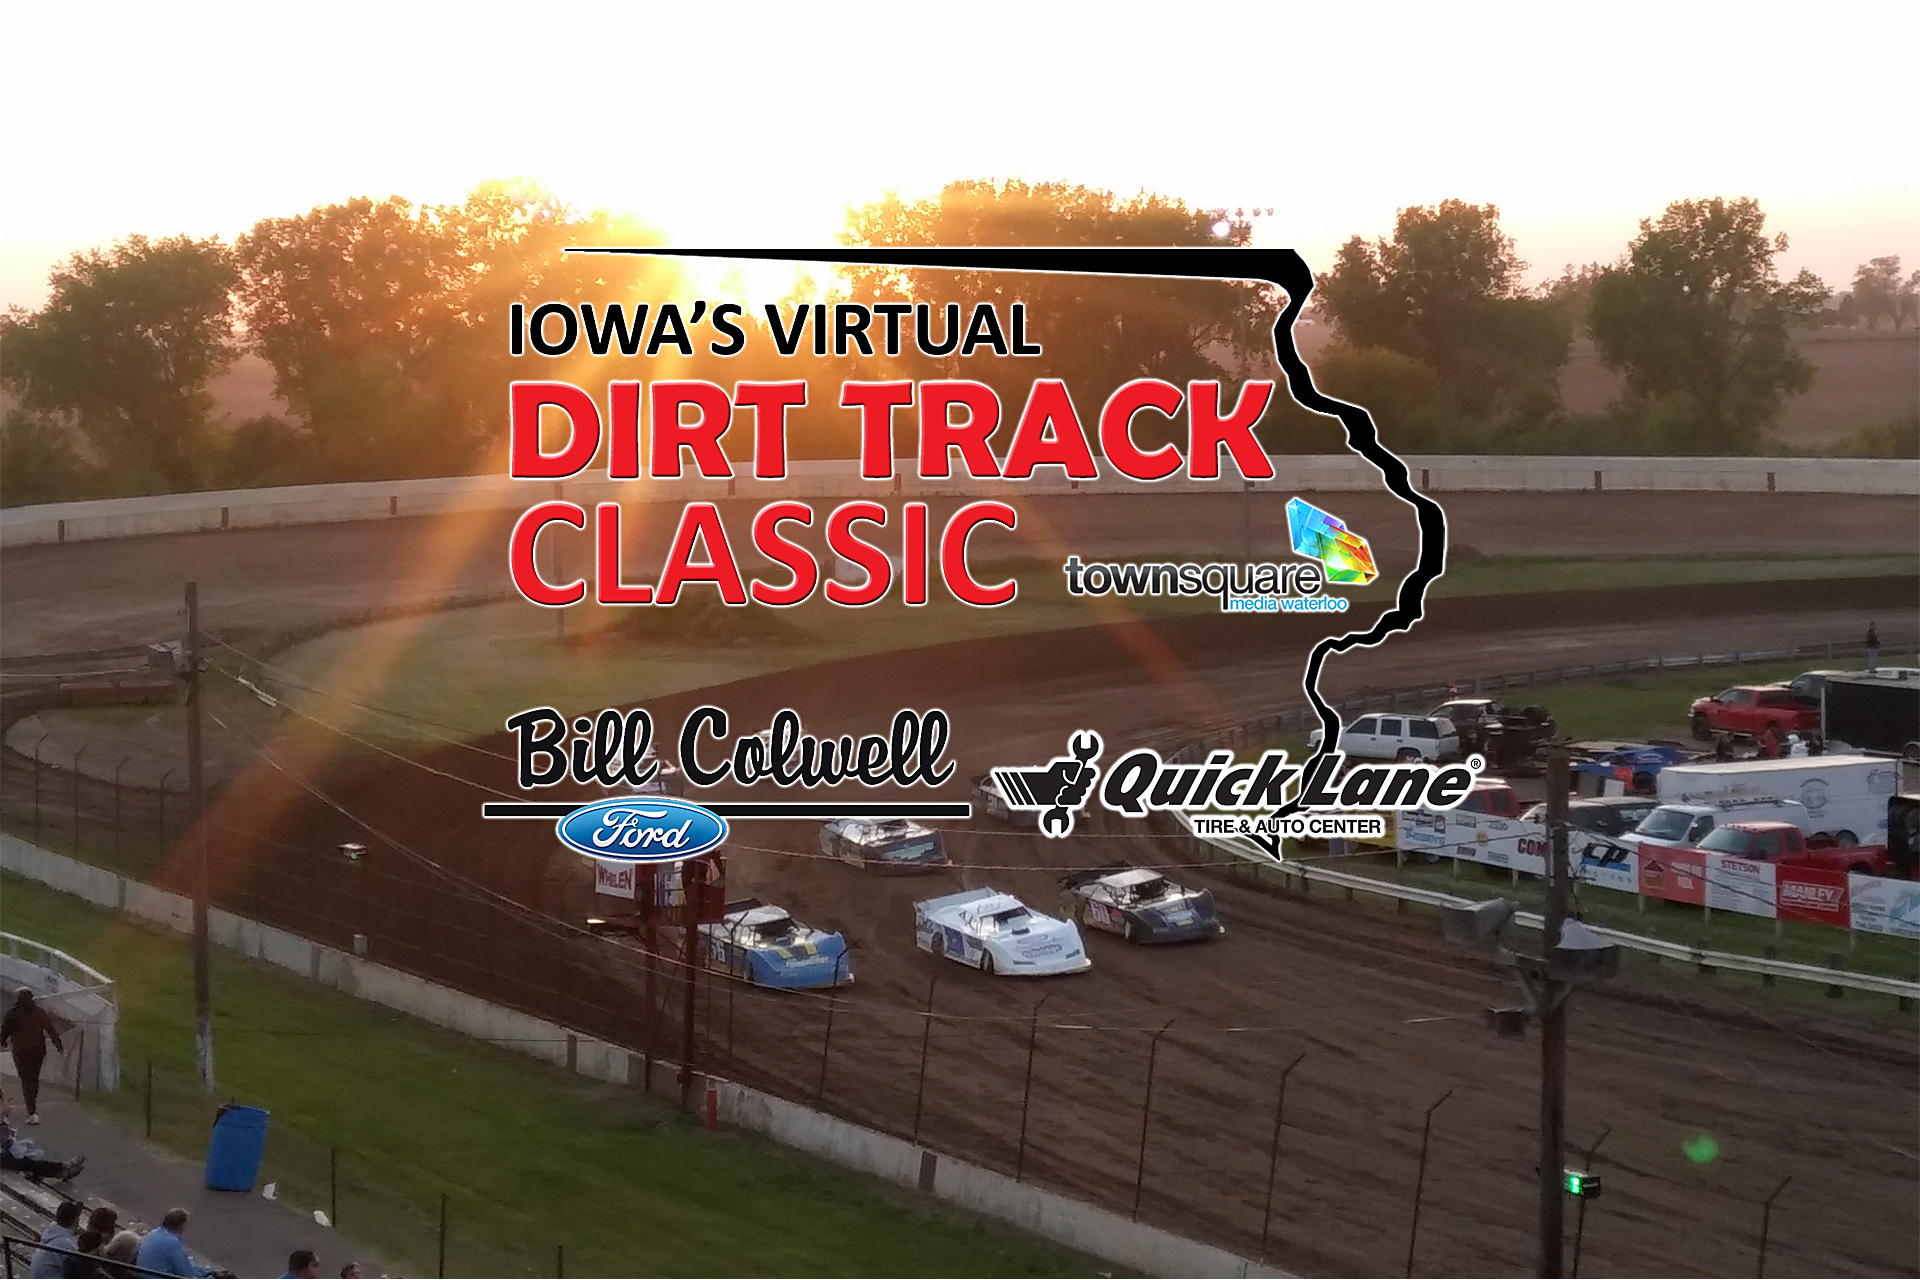 The Top 5 Shootout For Iowas Virtual Dirt Track Classic Begins Rc Car Circuit Finalstage